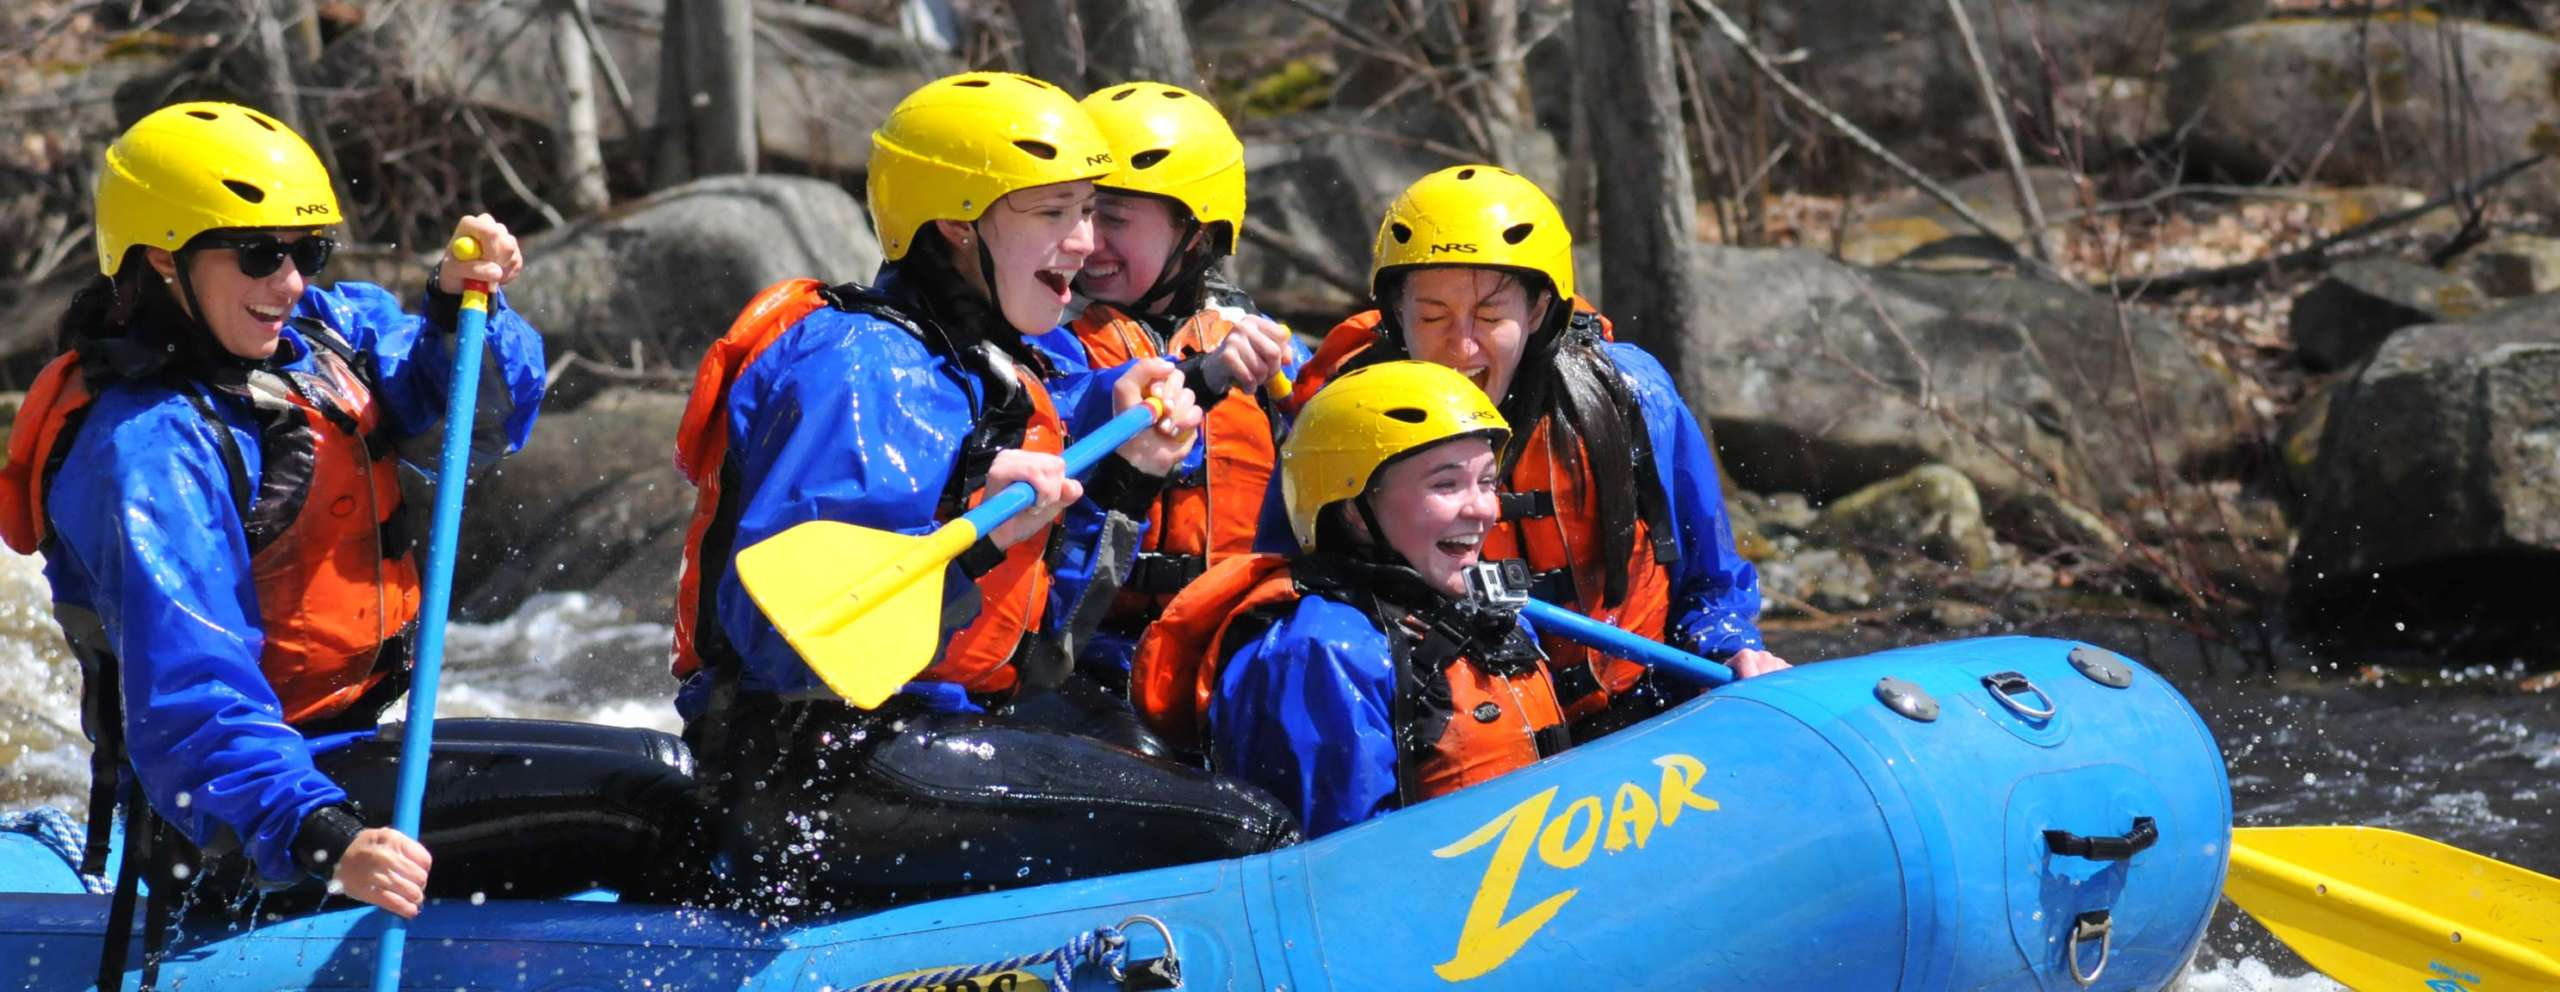 Rafting group having fun and smiling as they navigate rapids